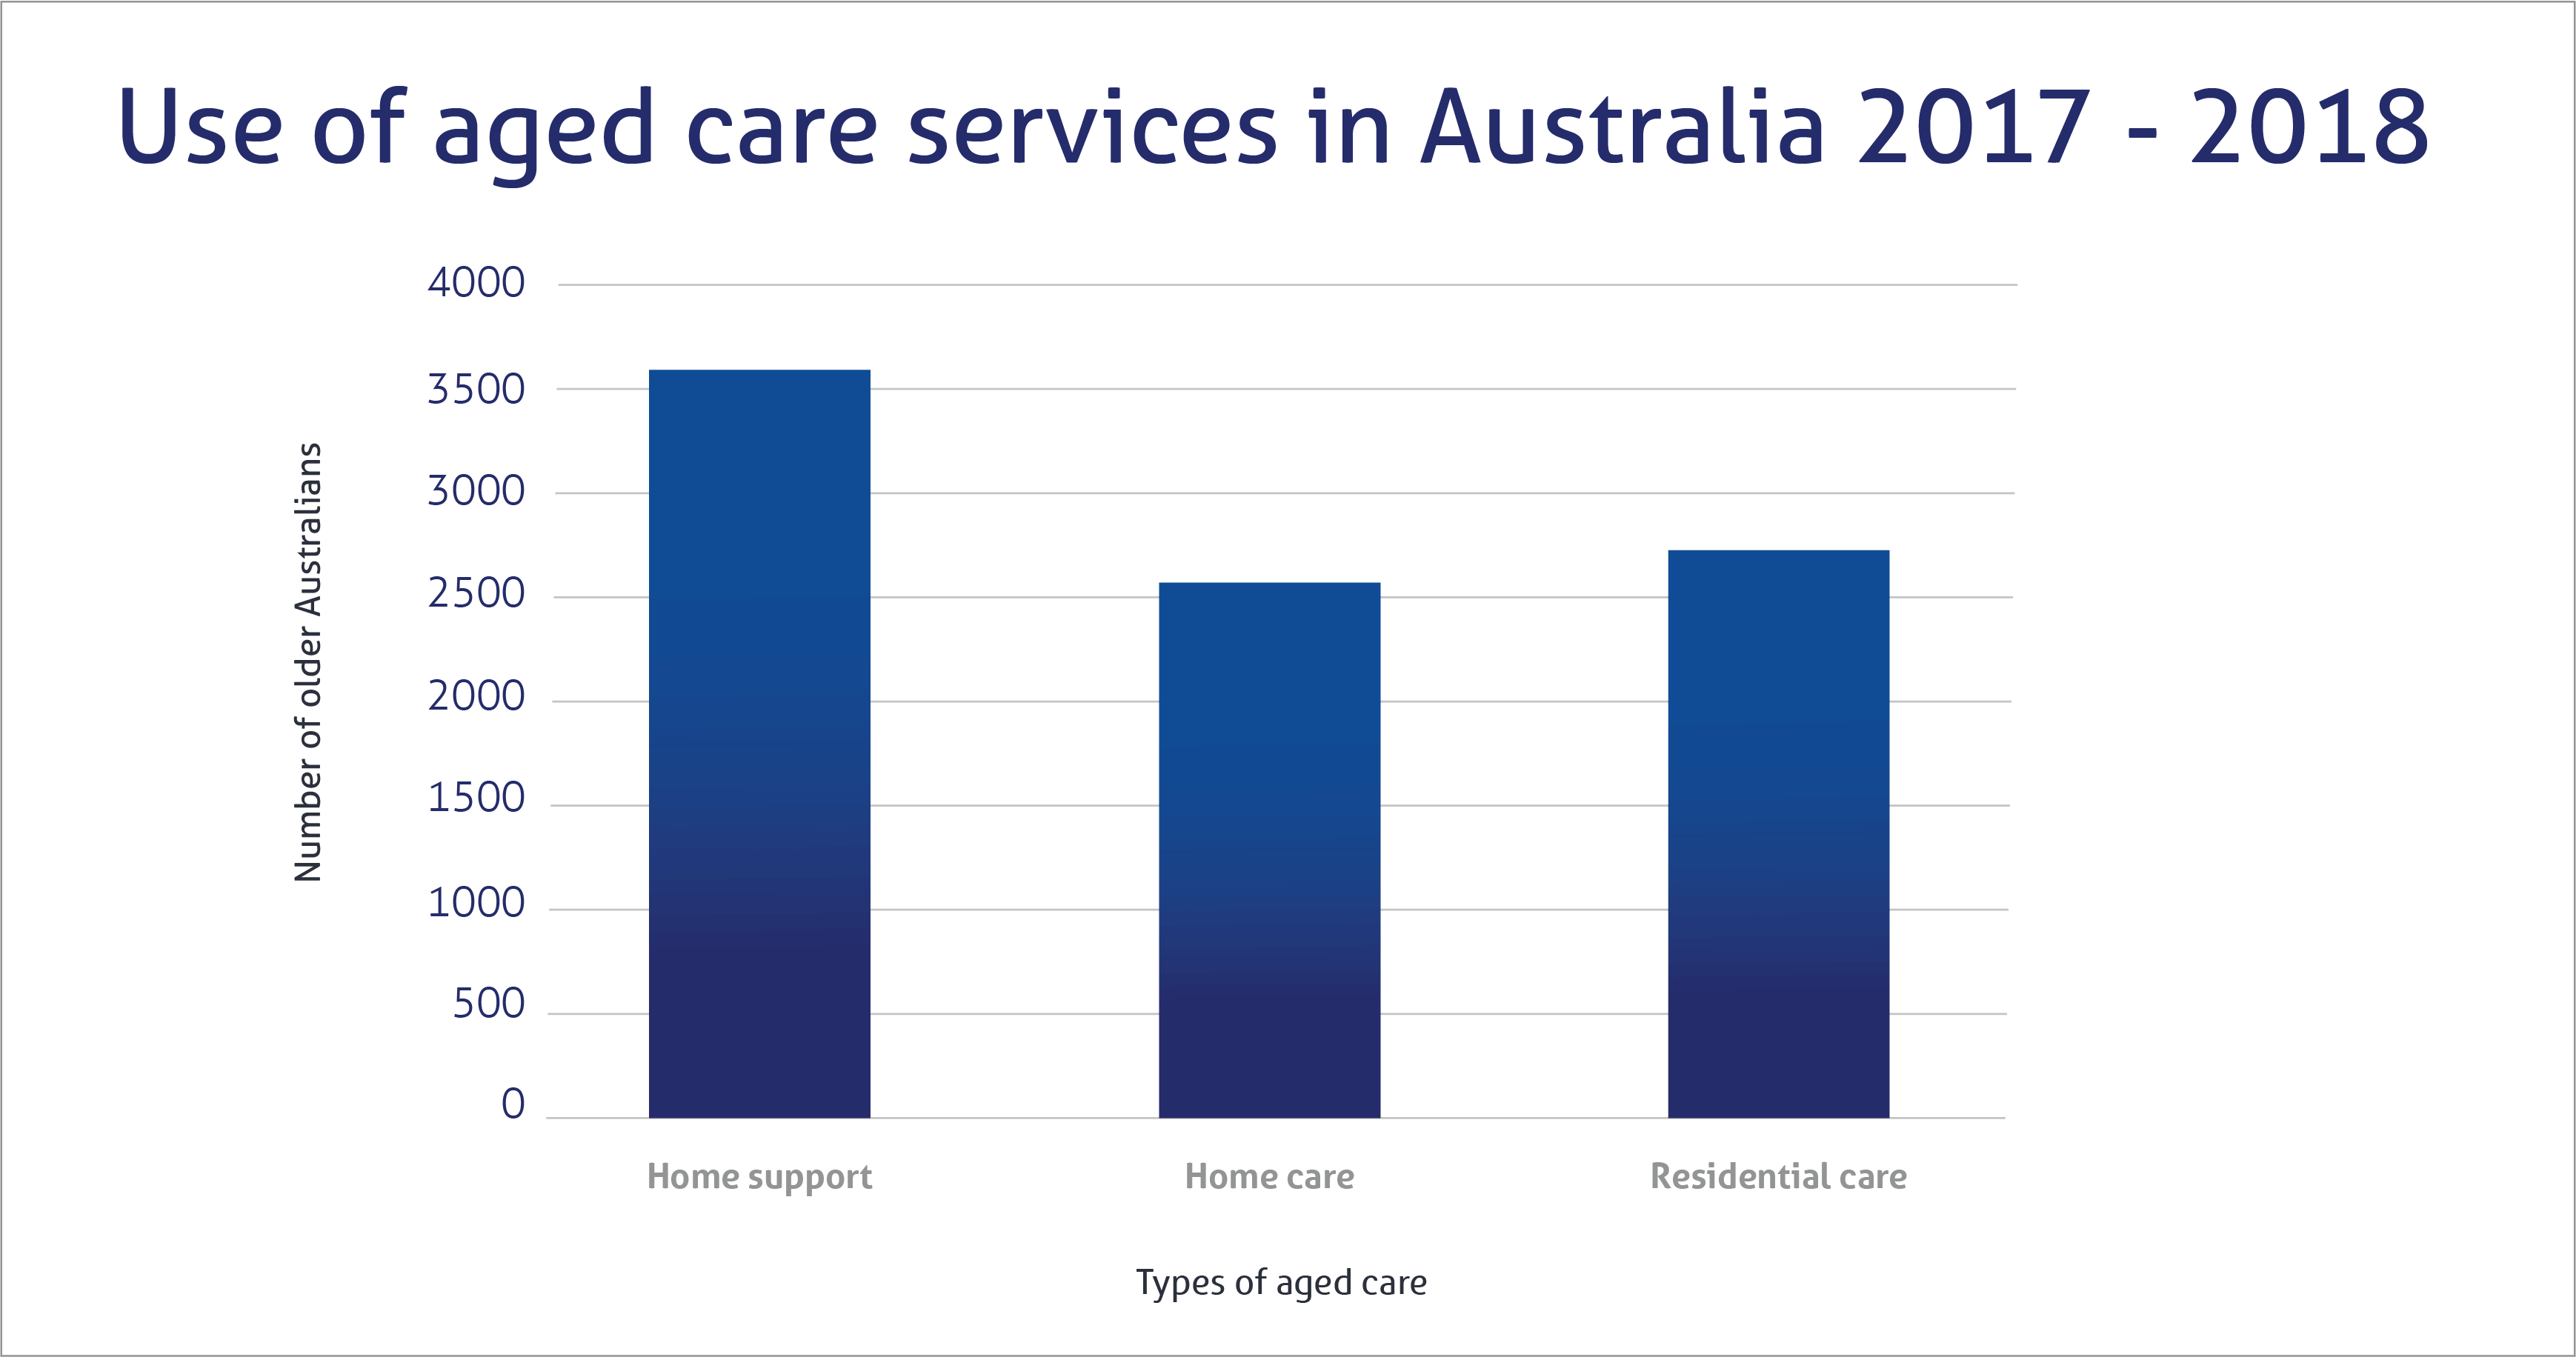 Use of aged care services in Australia